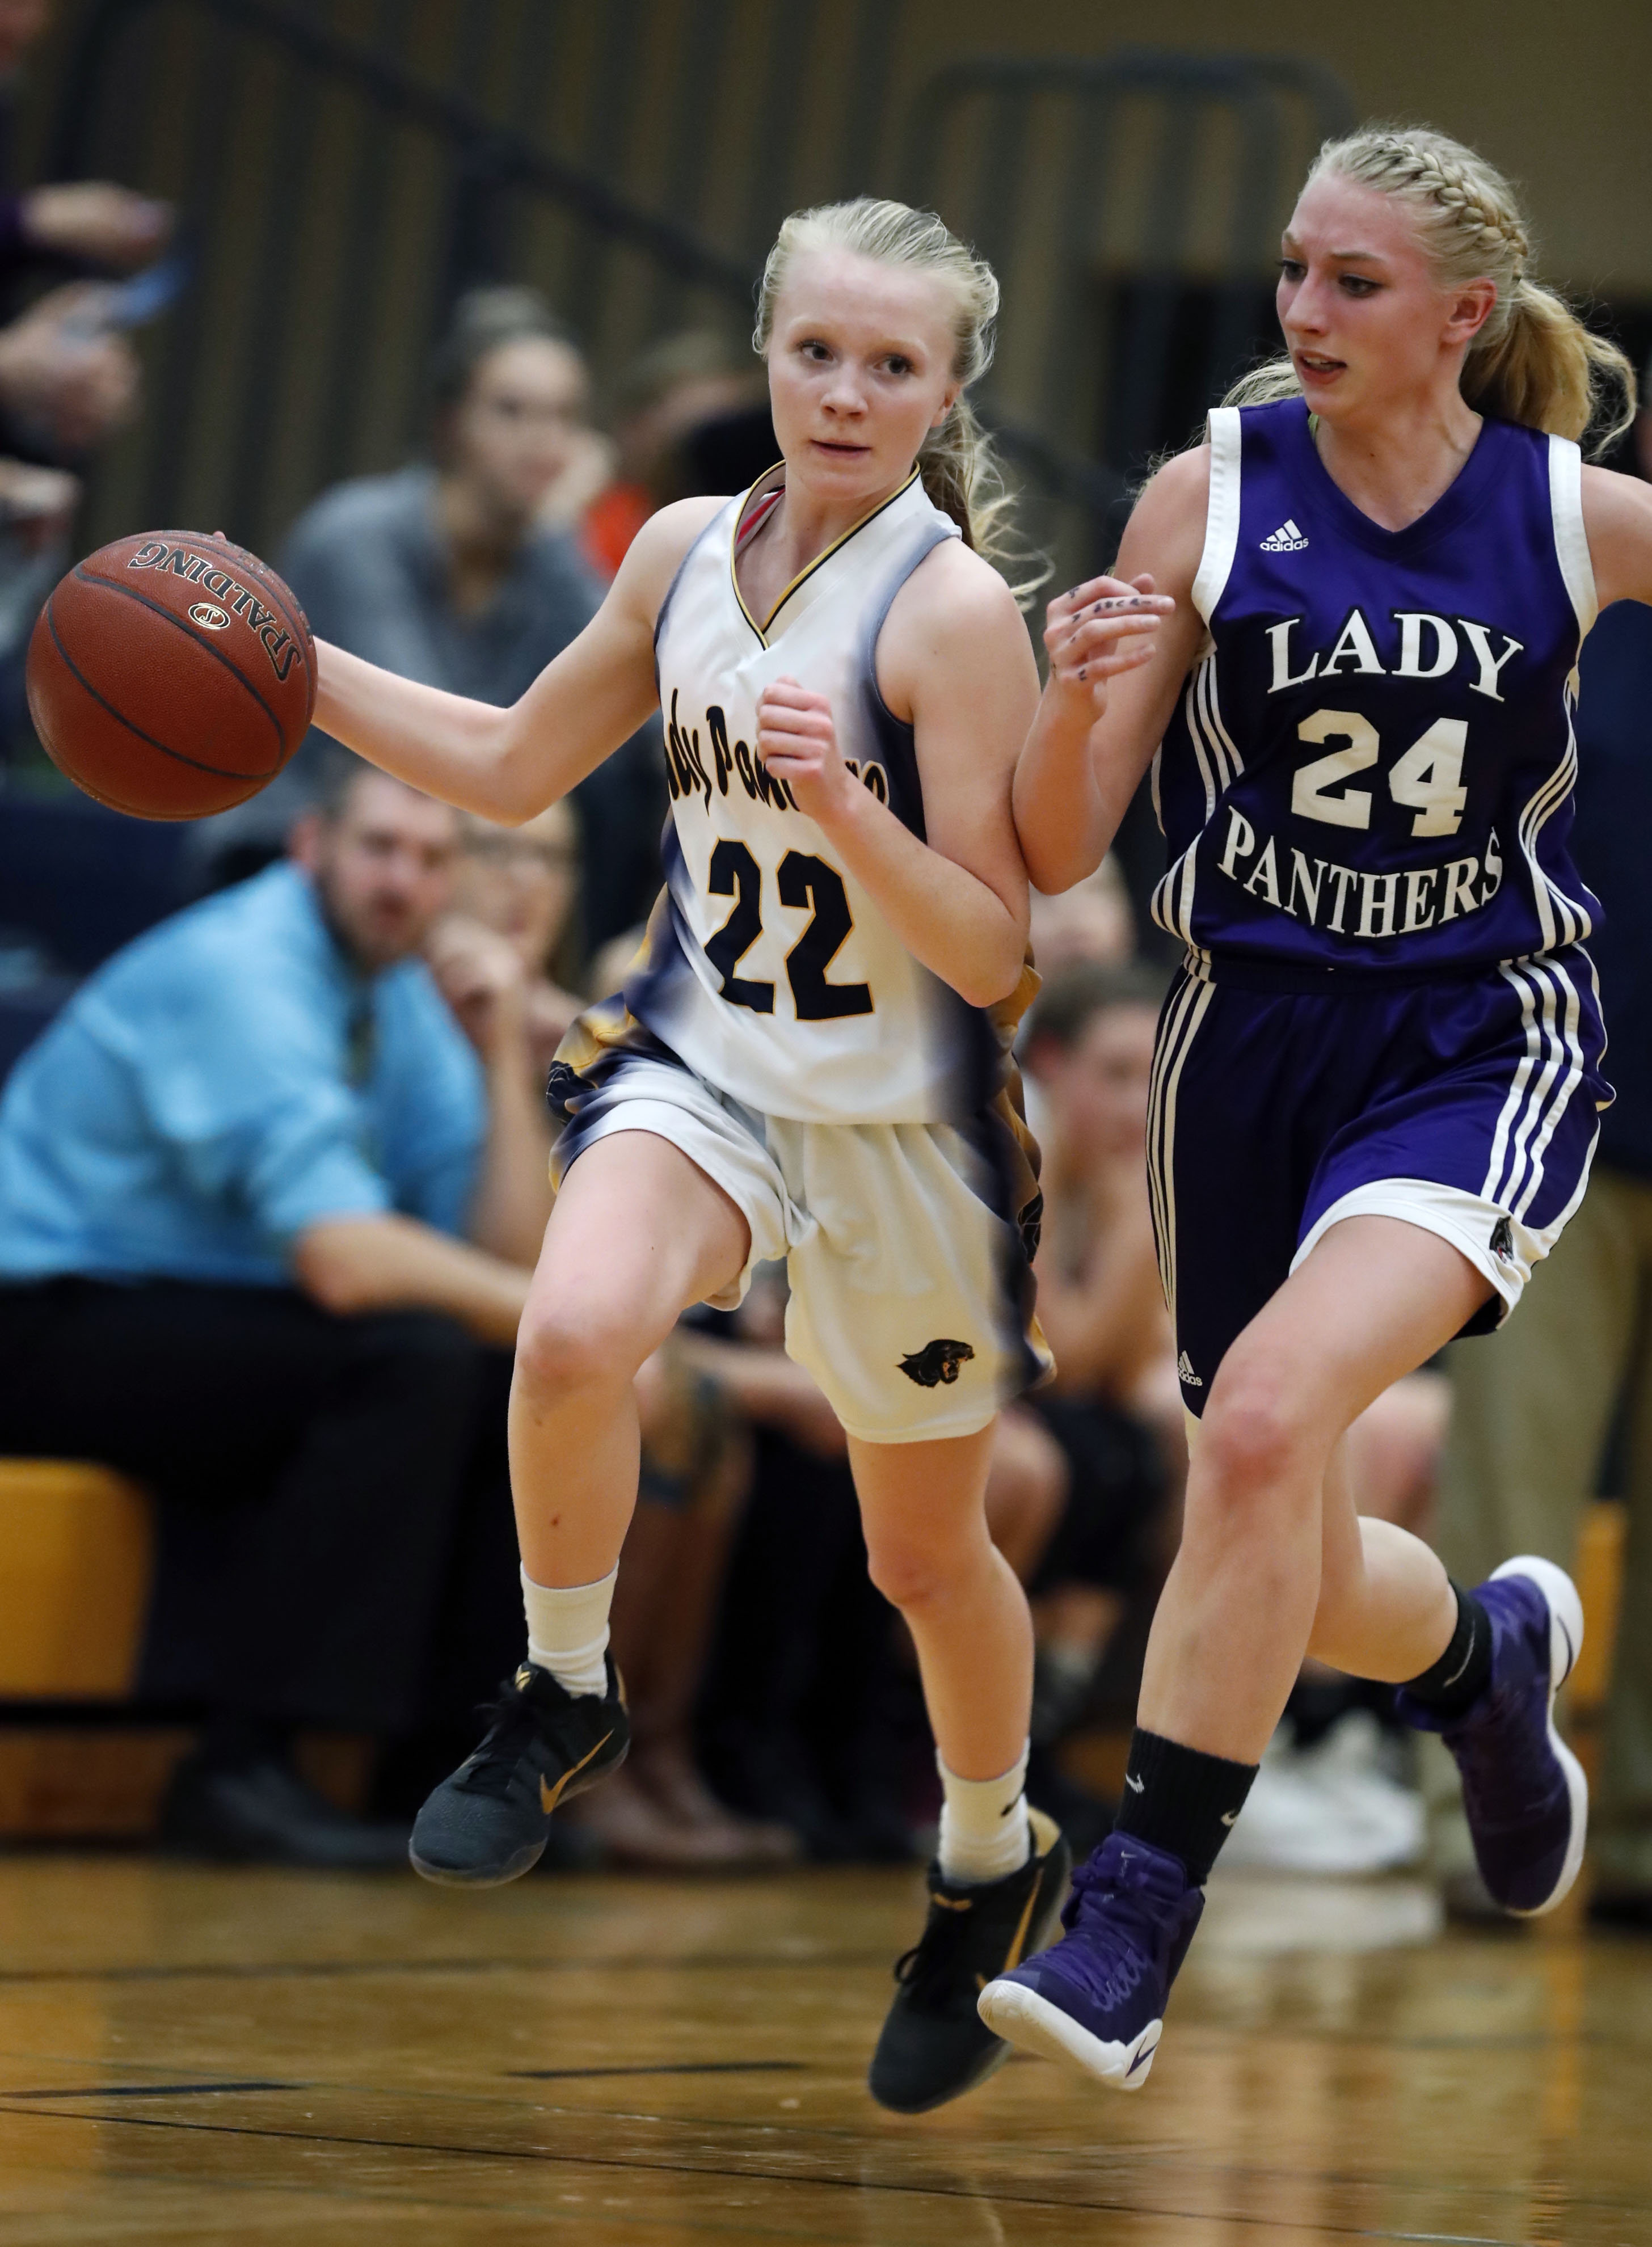 Franklinville's Danielle Haskell is guarded by Pine Valley's Zoe Nelson during first half action at Franklinville Tuesday. Haskell scored 23 points in a 67-36 win for Franklinville. (Harry Scull Jr./Buffalo News)